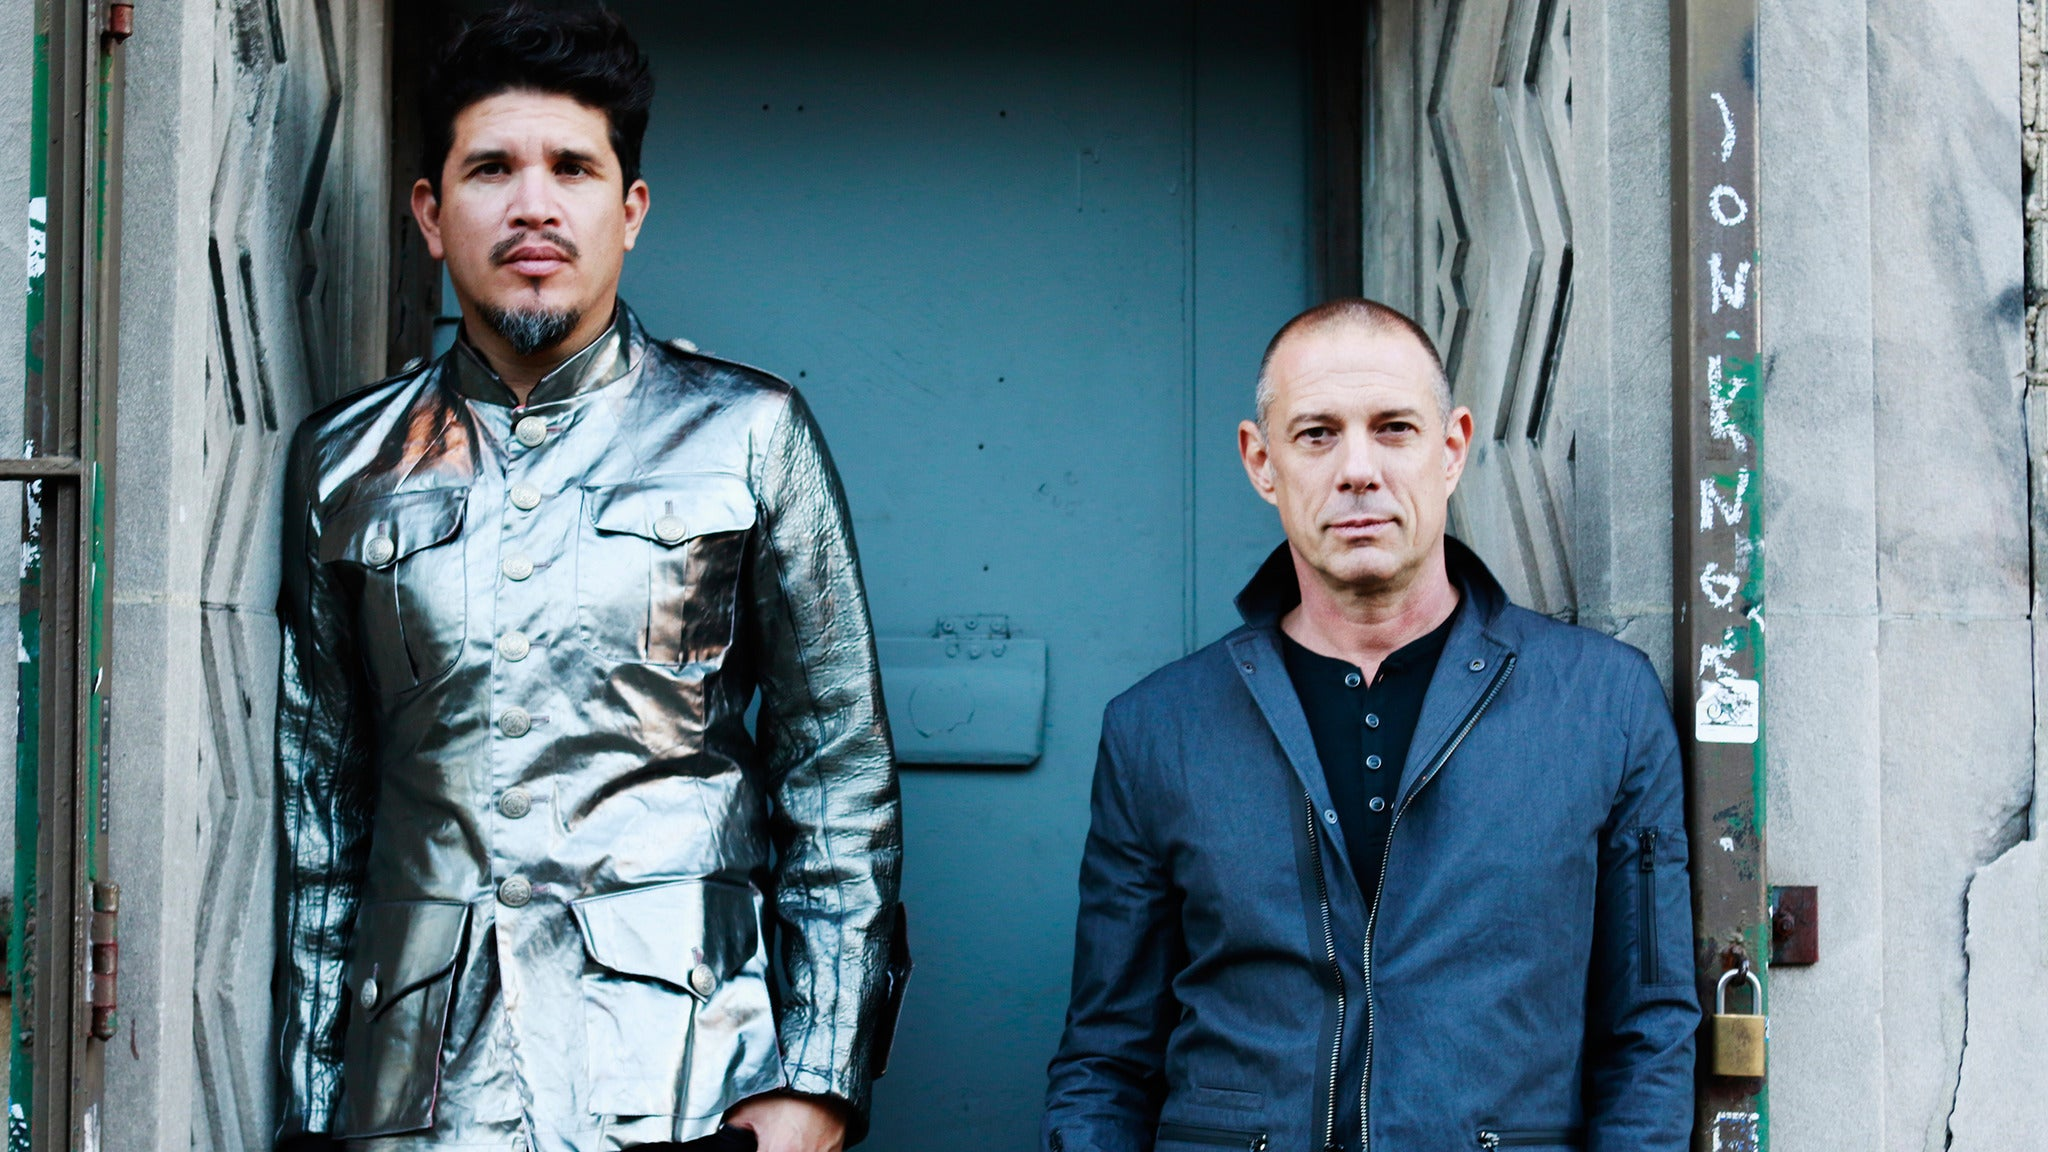 Thievery Corporation presented by SiriusXM